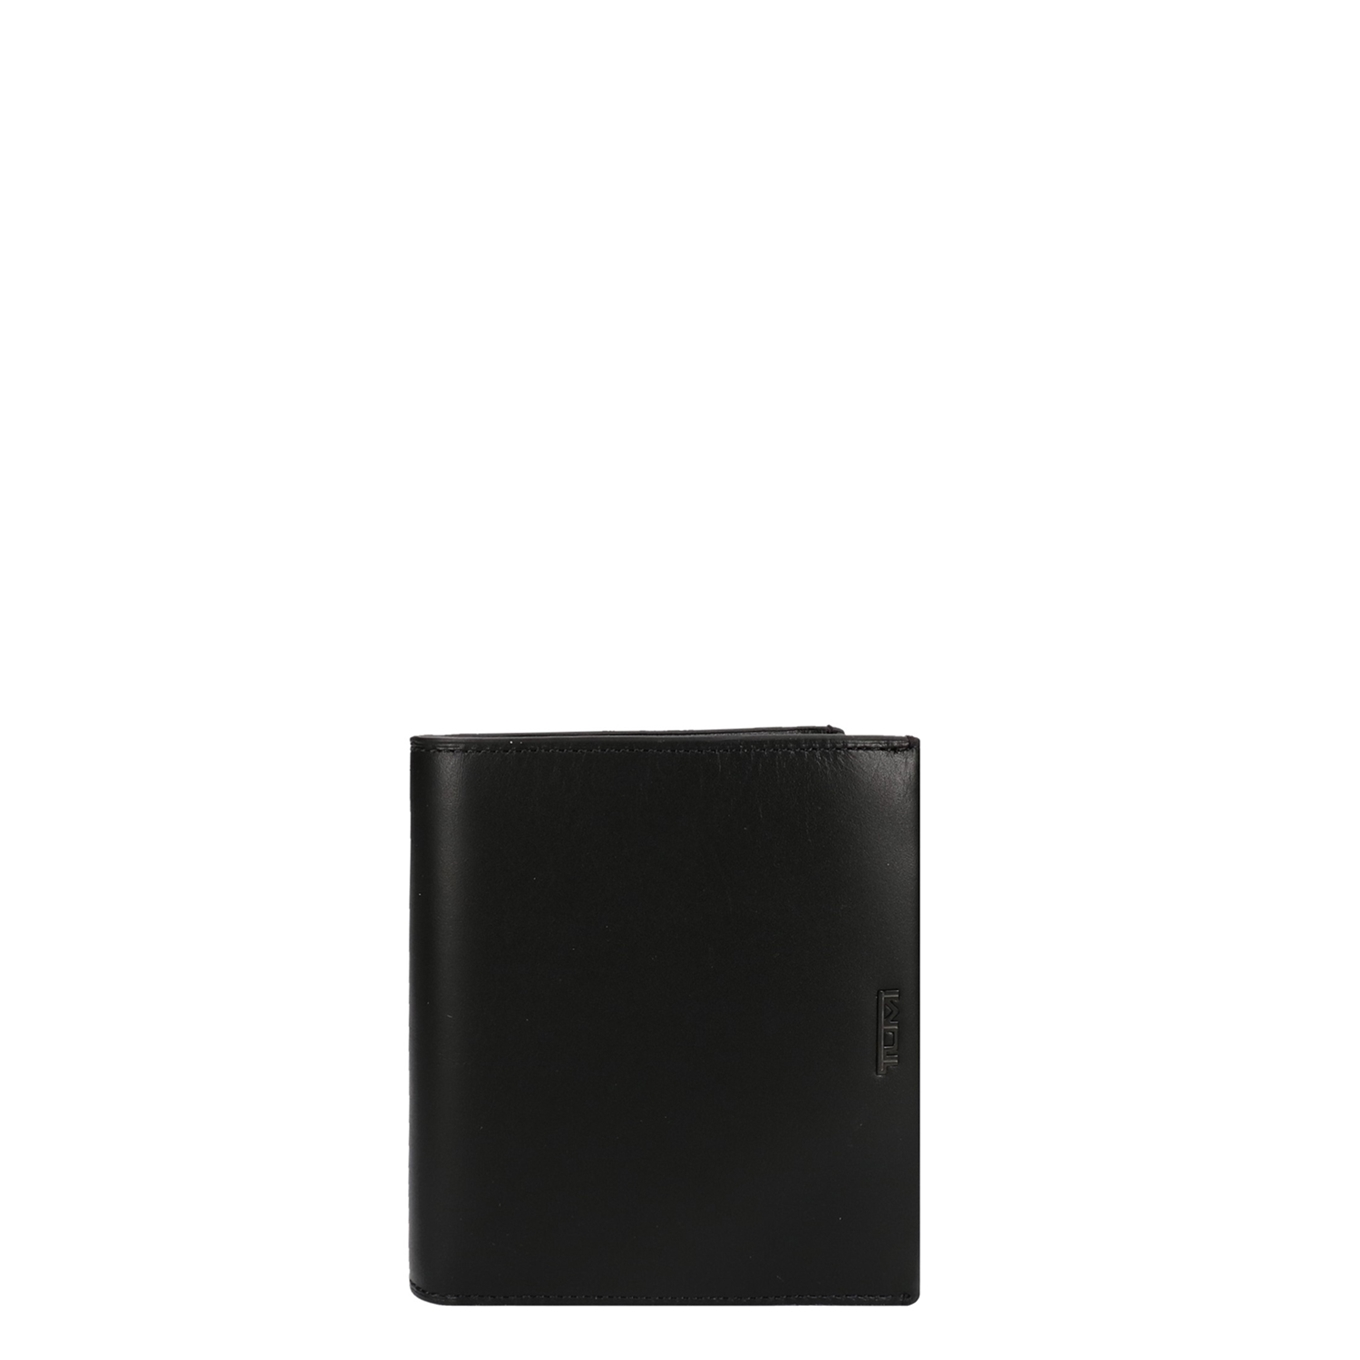 Tumi Nassau SLG Global Flip Coin Wallet black smooth Heren portemonnee <br/></noscript><img class=